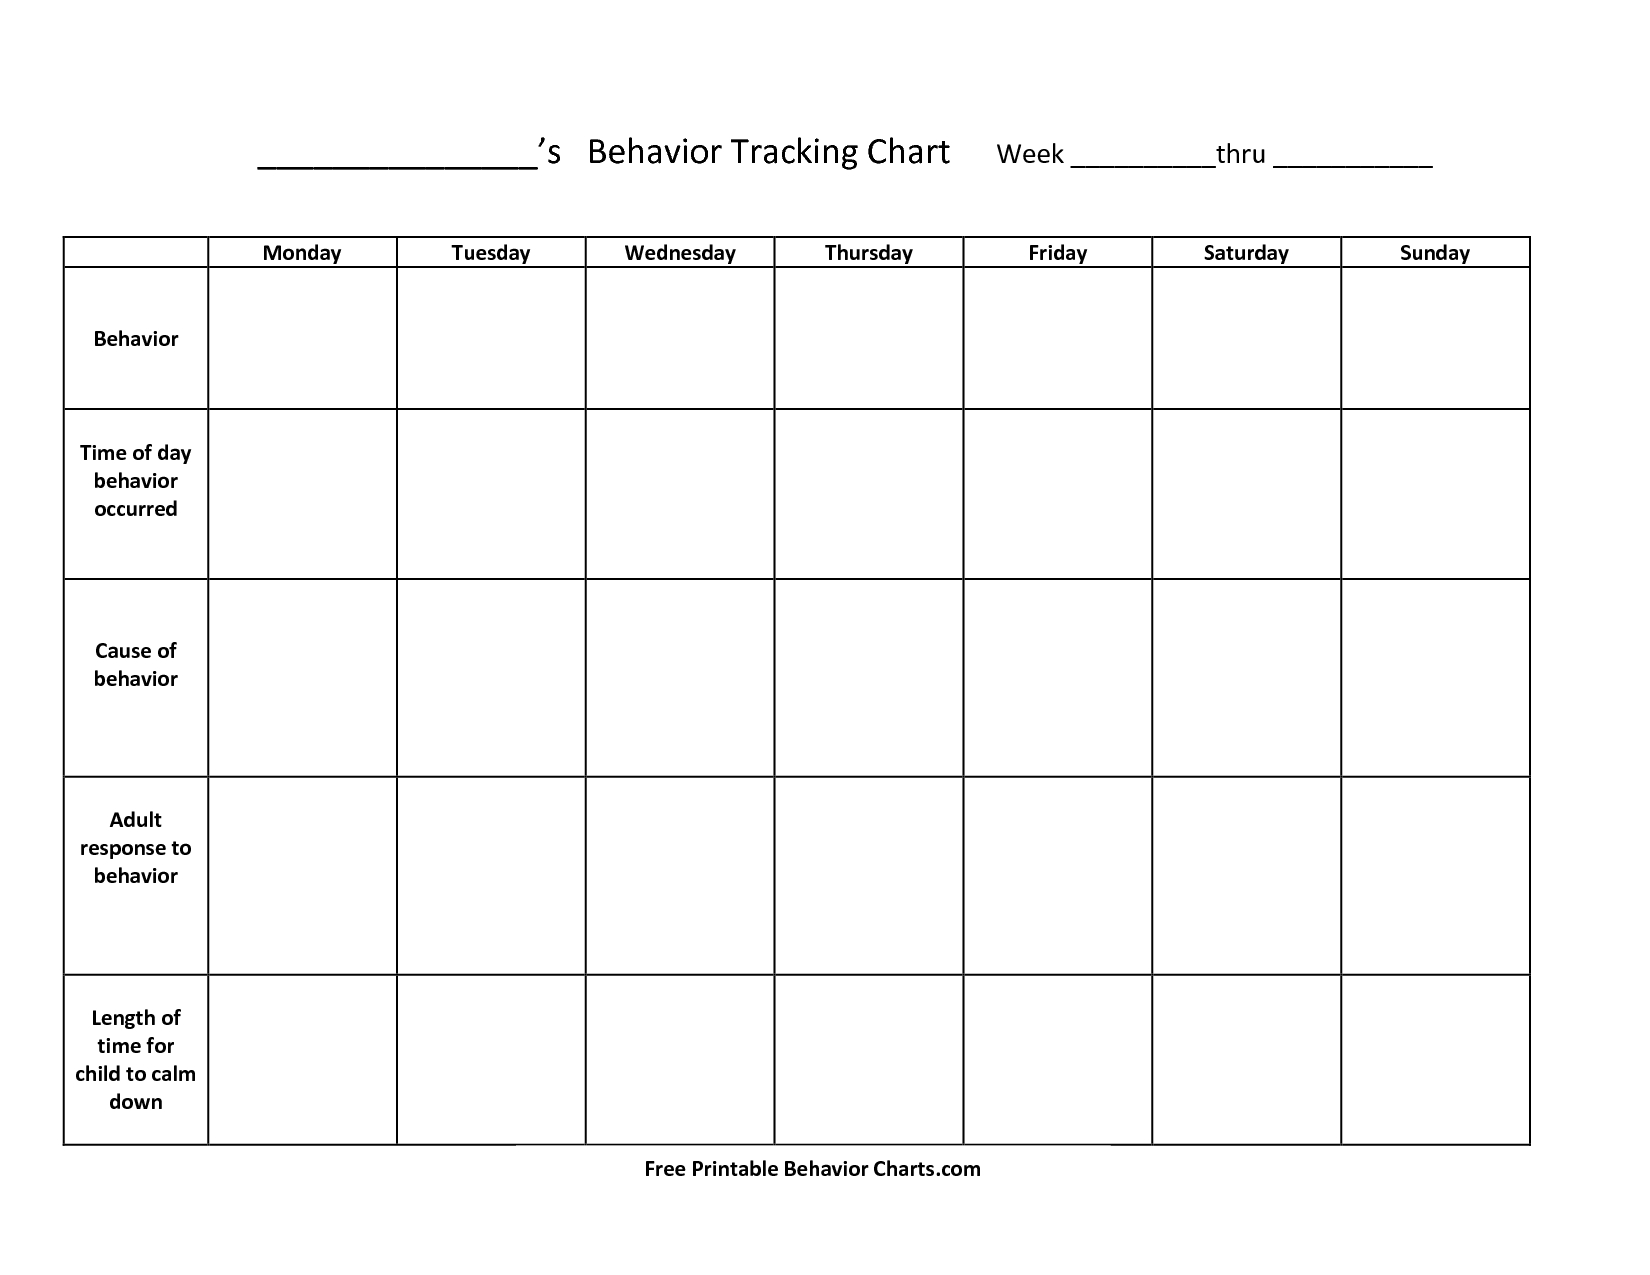 Free+Printable+Behavior+Charts+For+Teachers | Things To Try | Reward pertaining to Free Printable Blank Behavior Charts